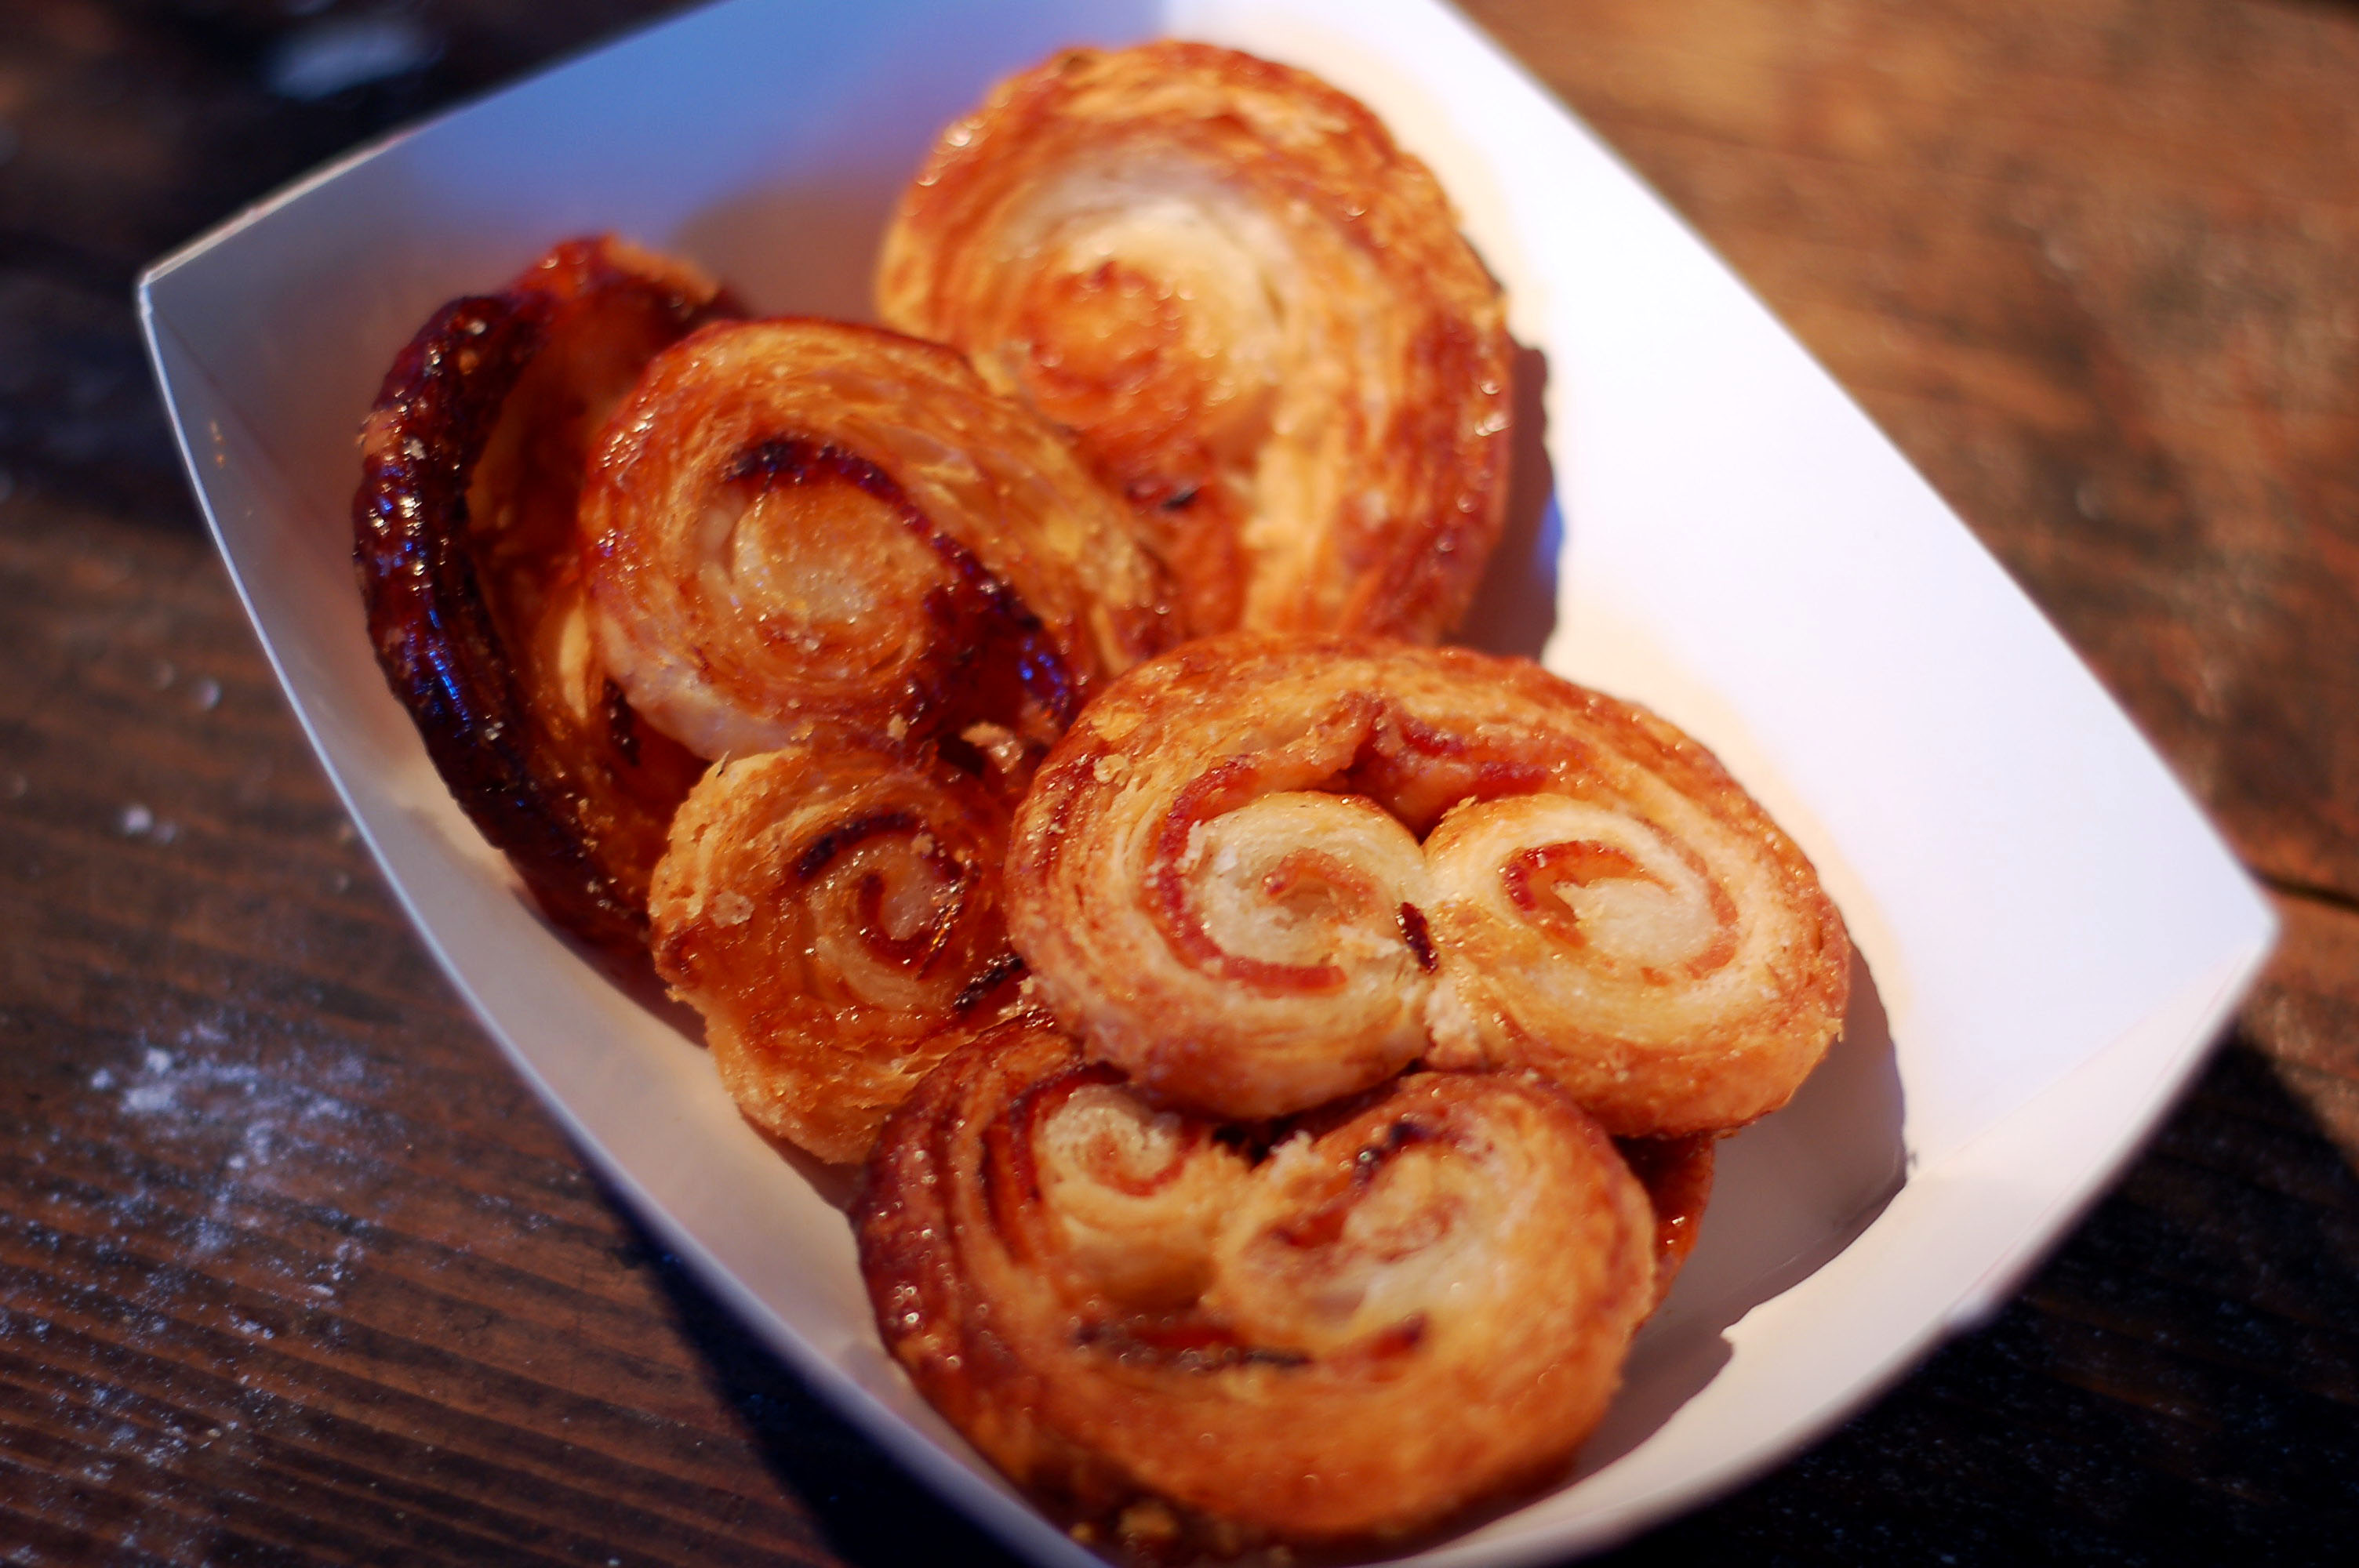 Holy cow, these bacon palmiers were amazing!